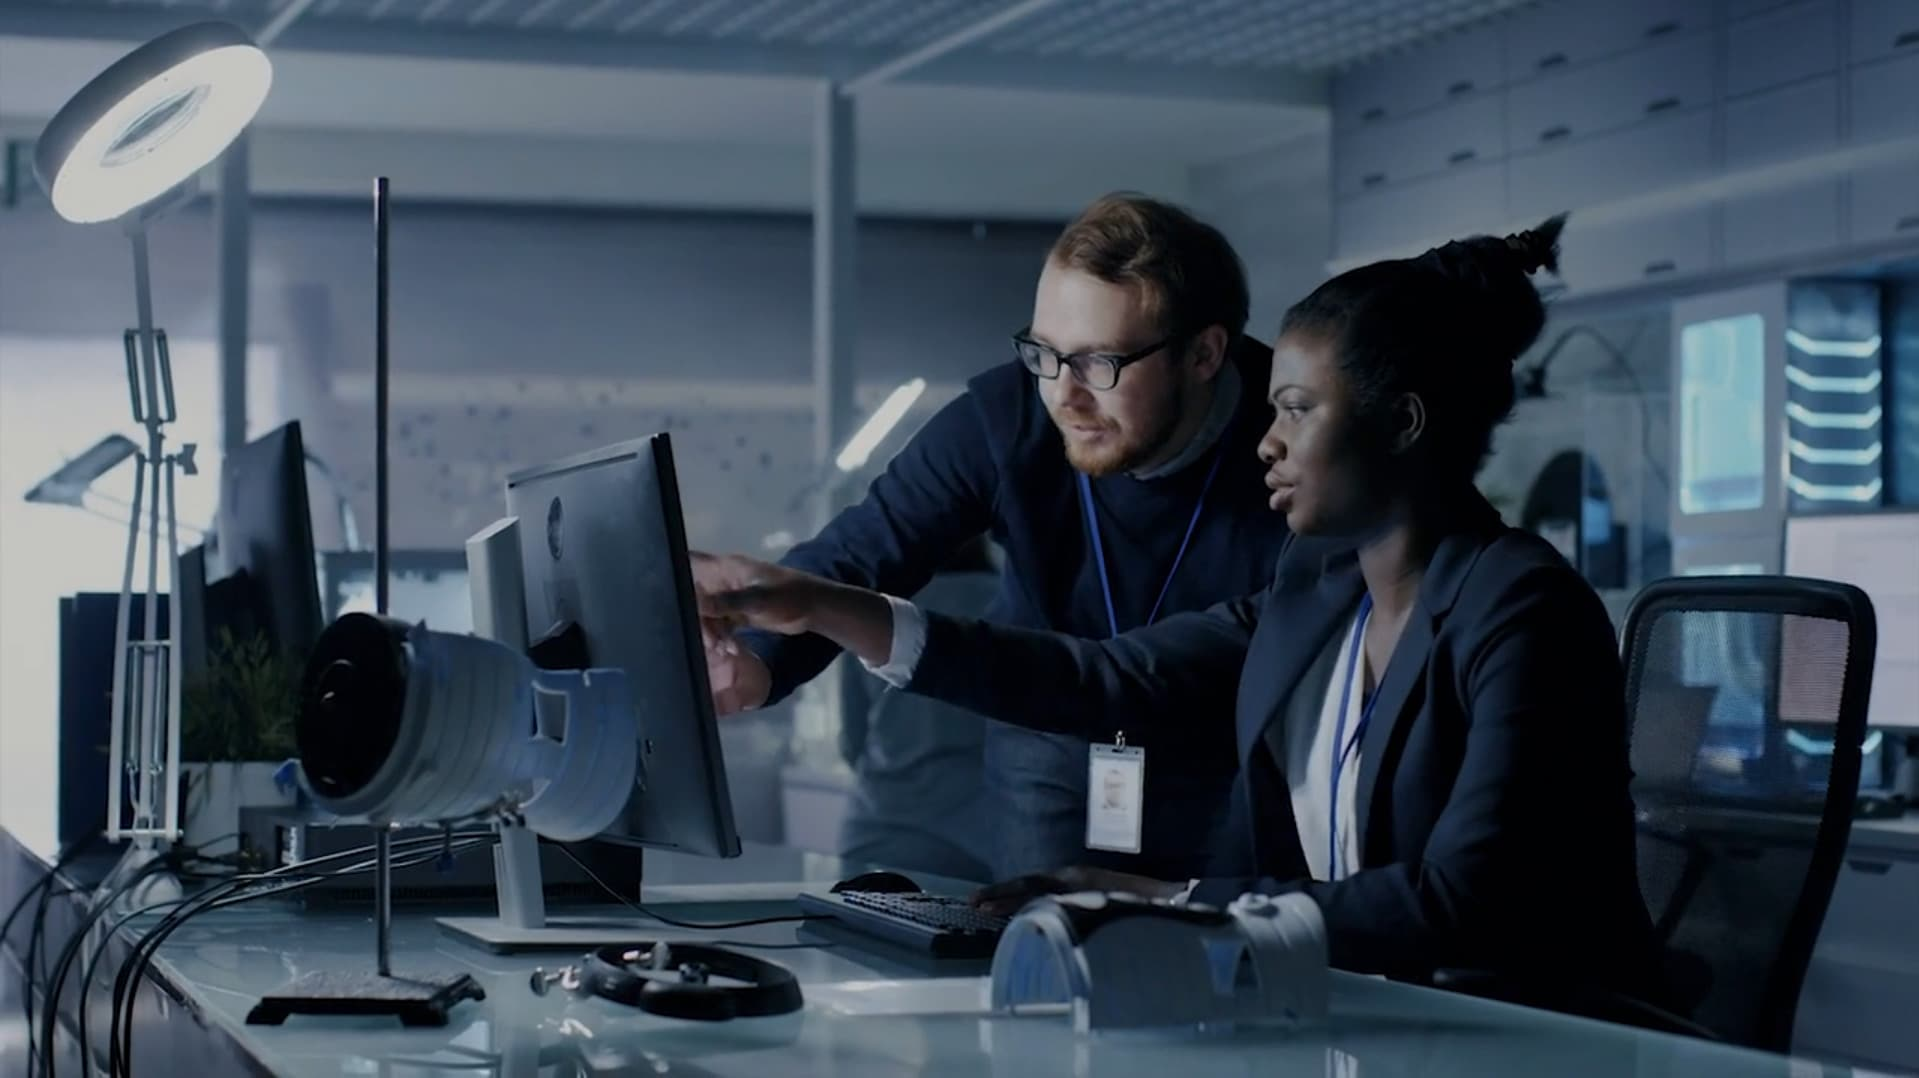 A man and woman discussing work in front of a computer screen